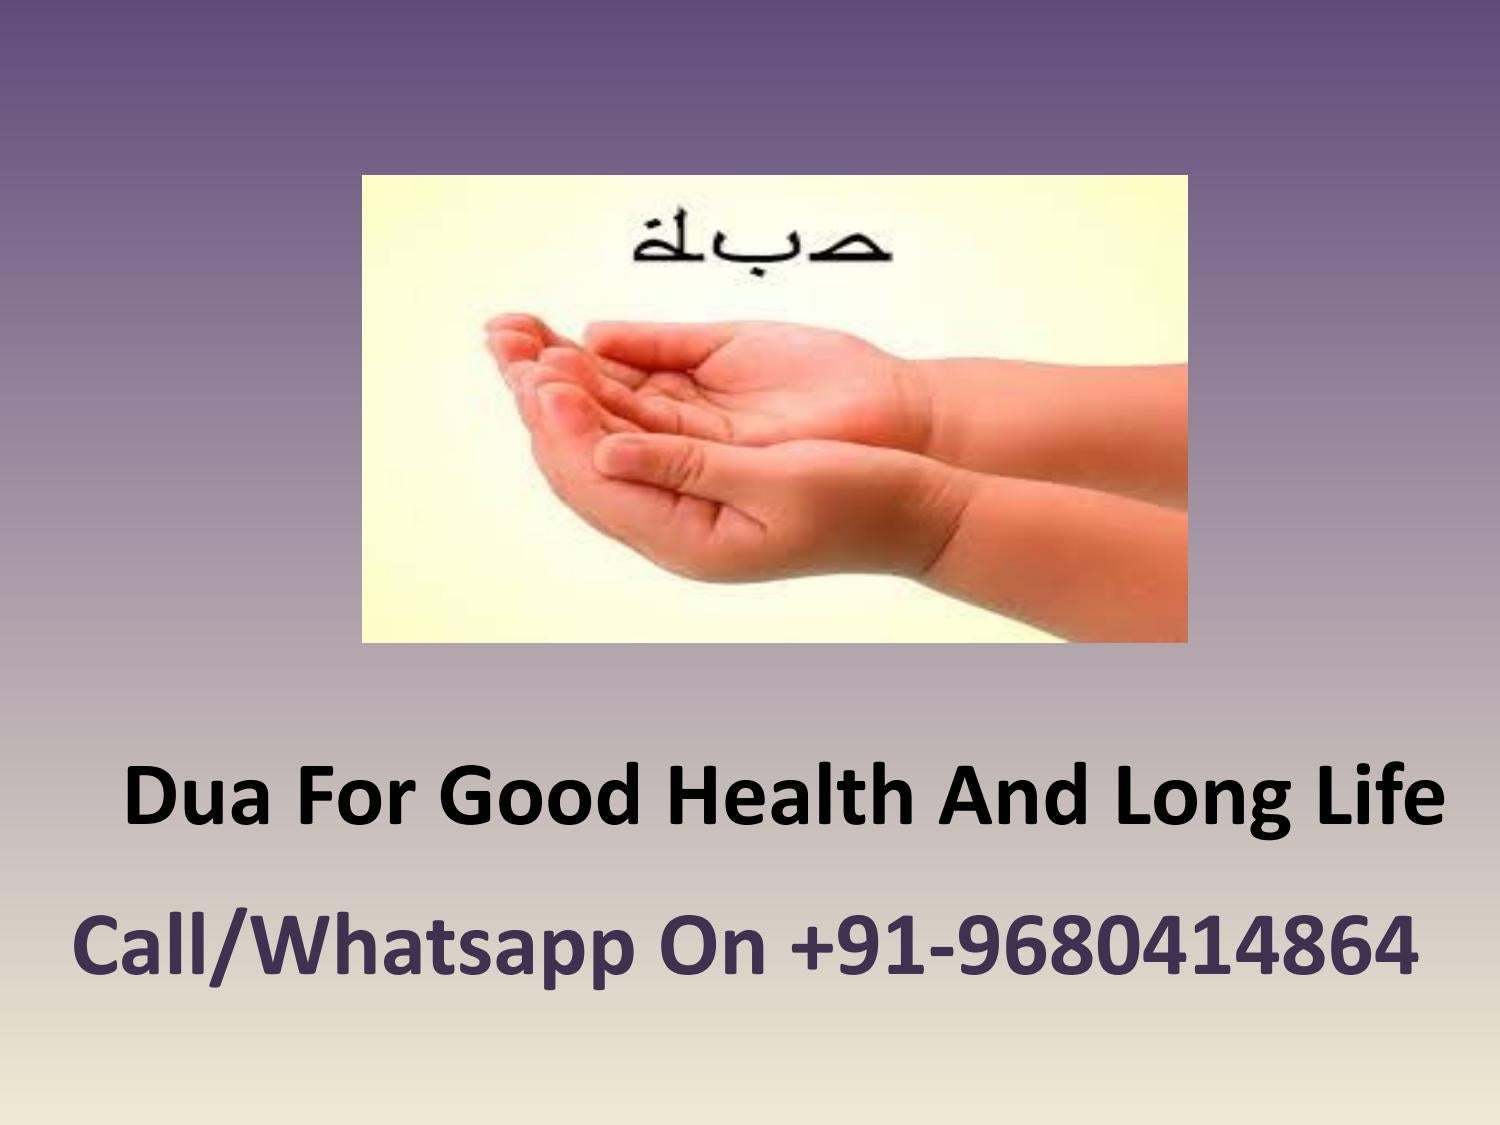 Dua For Good Health And Long Life by quranic solution - issuu